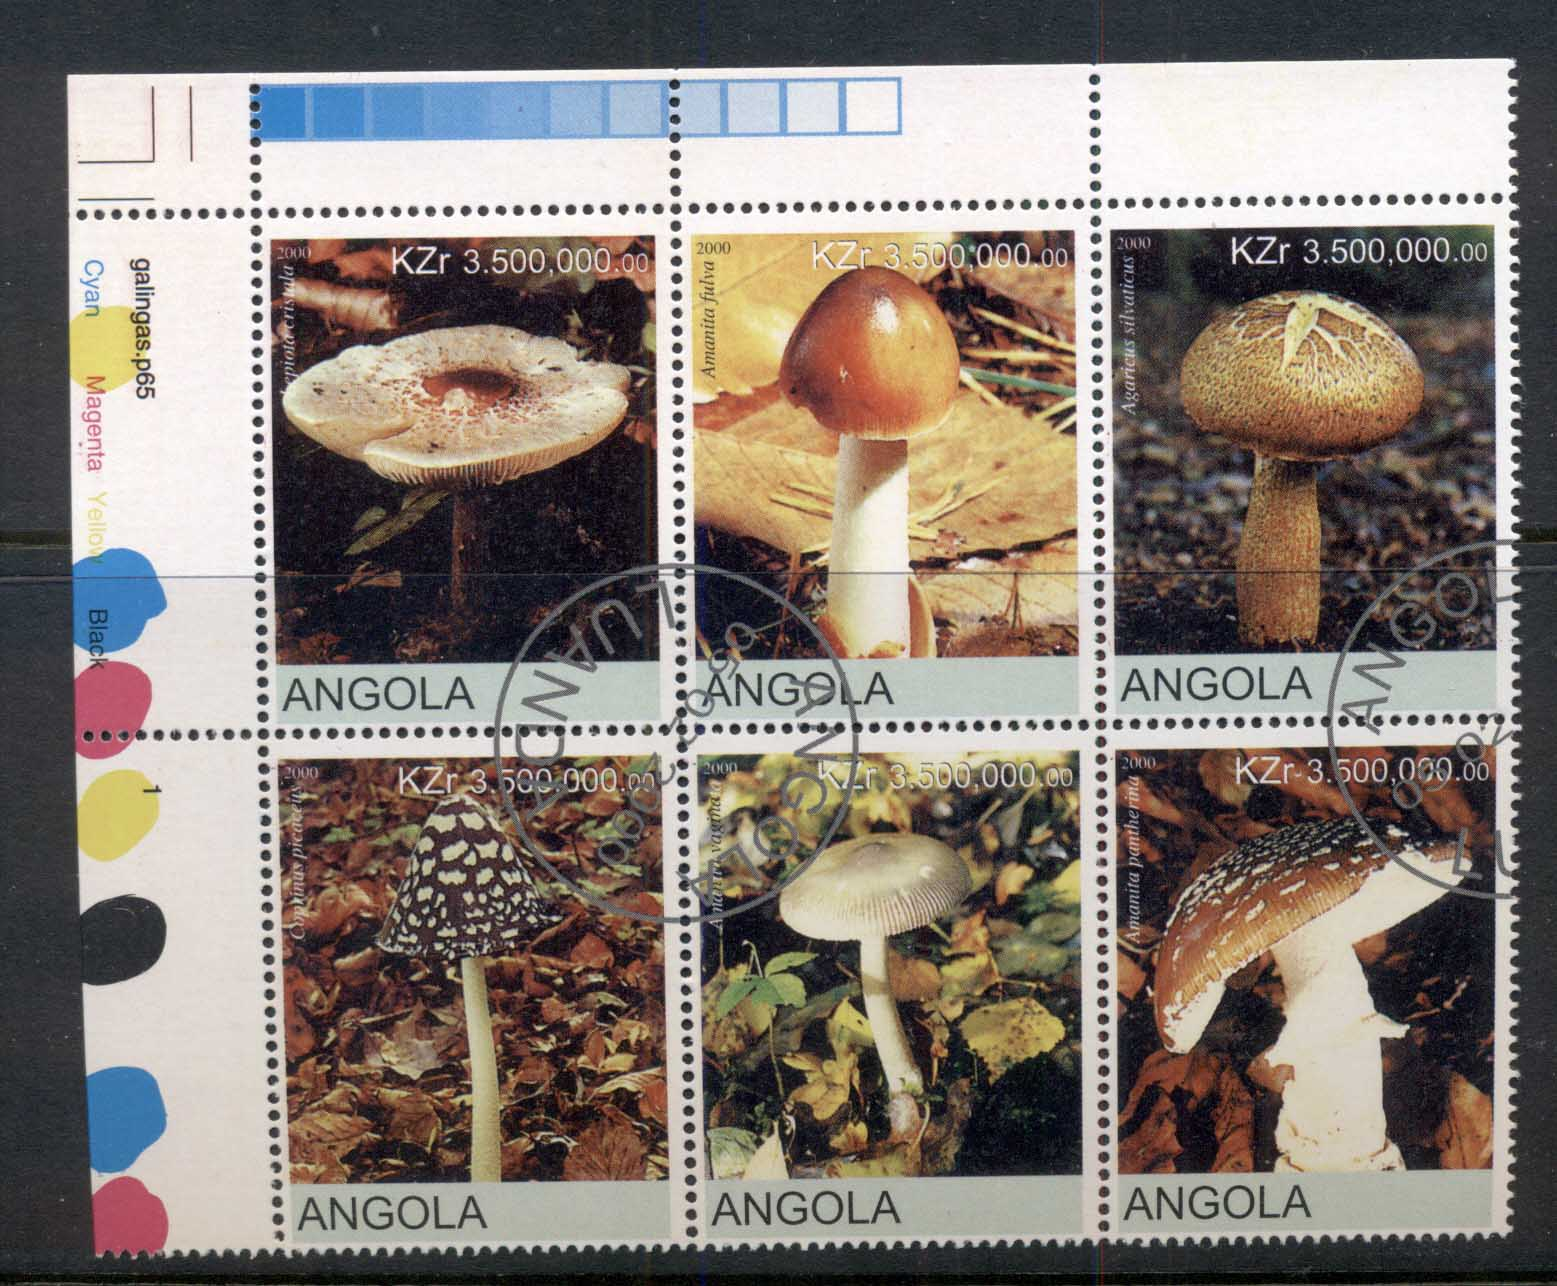 Angola 2000 Funghi, Mushrooms blk6 (rebel Issue) CTO